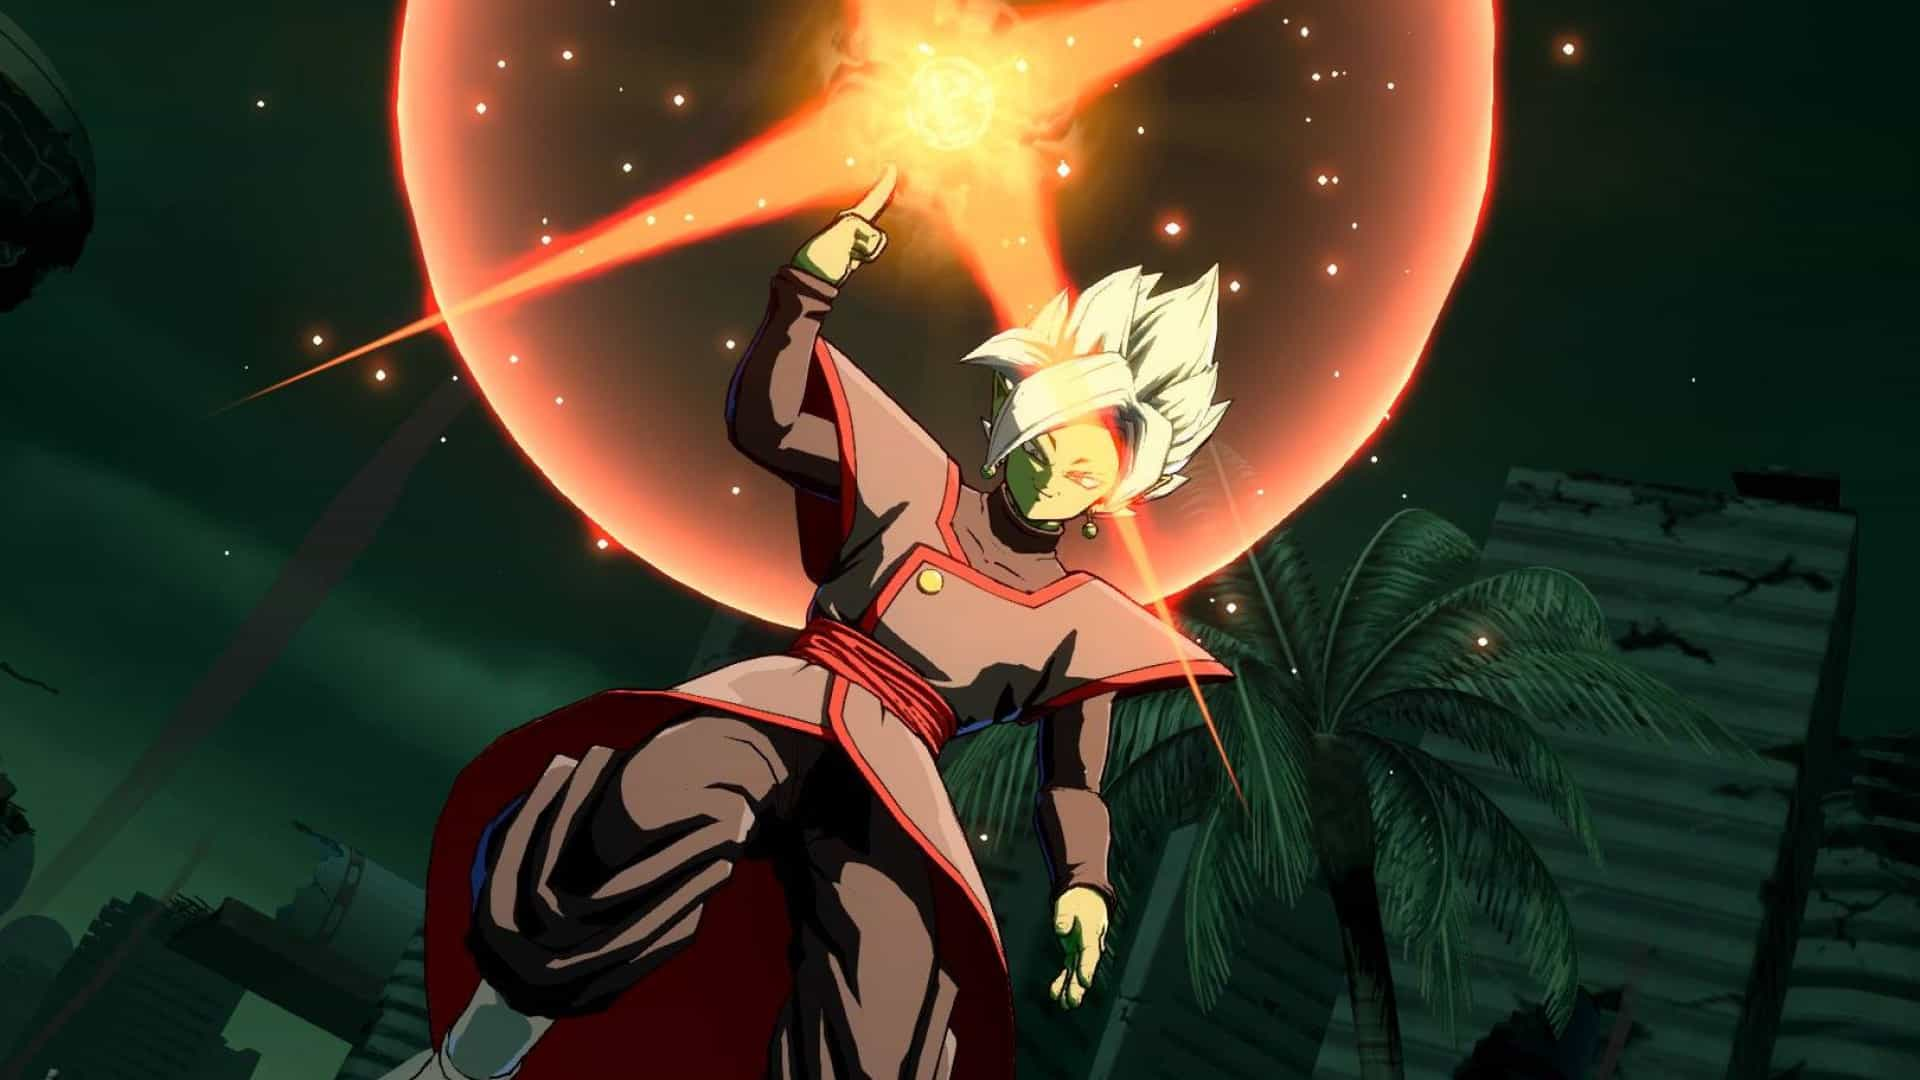 Dragon Ball FighterZ: Zamasu mostra todo seu poder em novo trailer